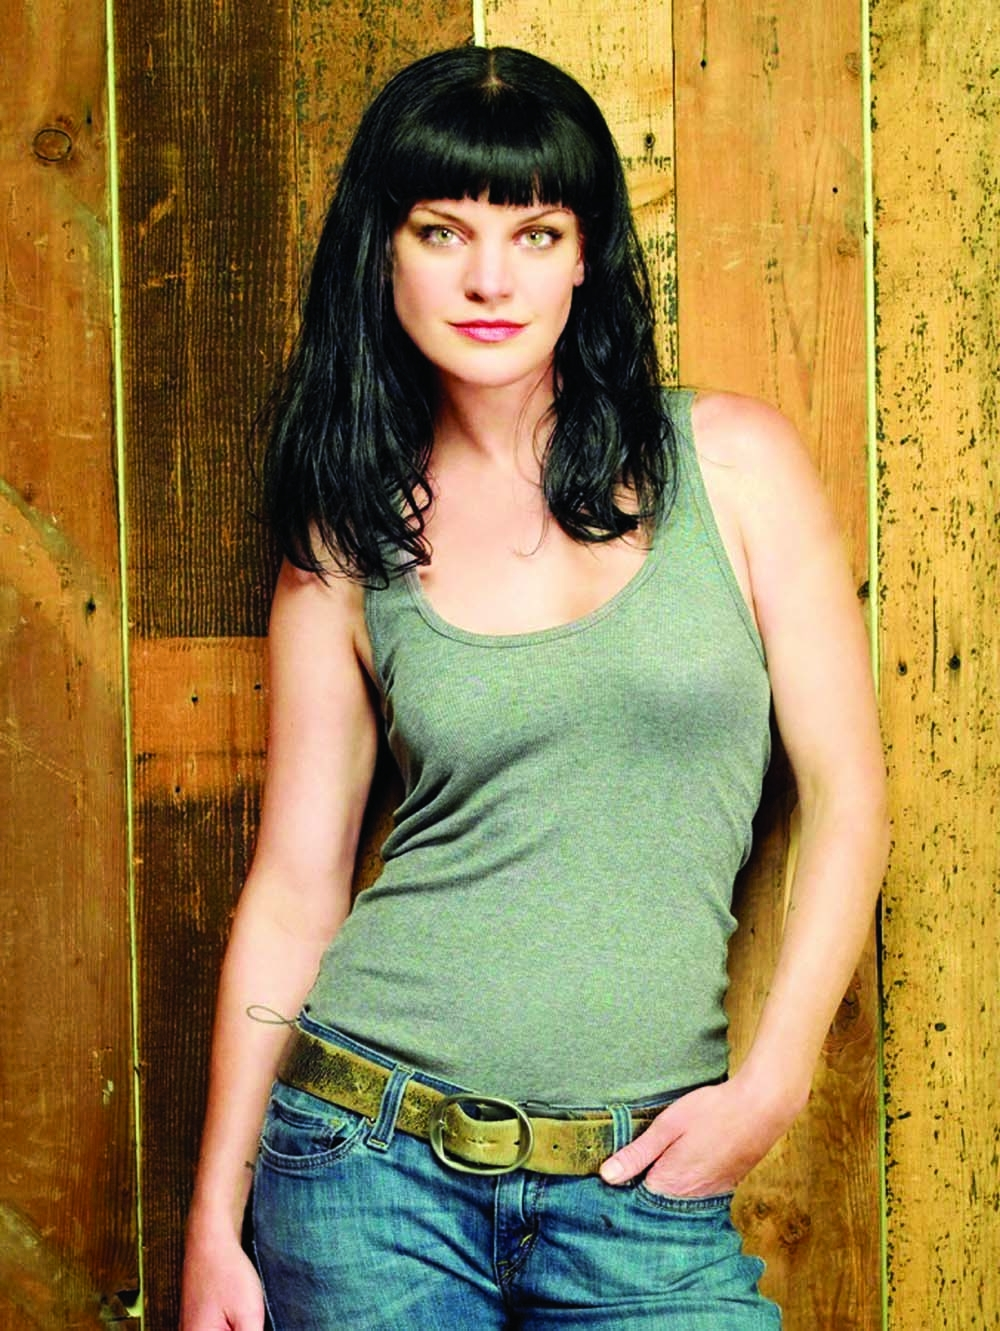 'NCIS' actress Pauley Perrette assaulted in Hollywood ...